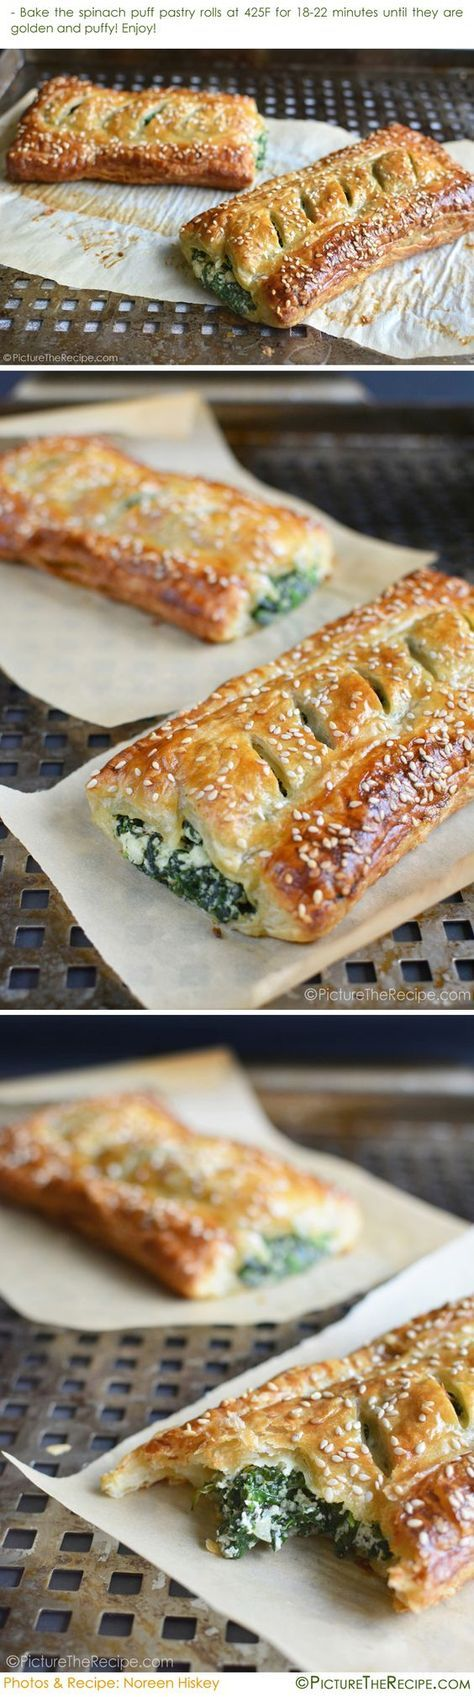 Spinach Puff Pastry Rolls with Feta and Ricotta Recipe- PictureTheRecipe com